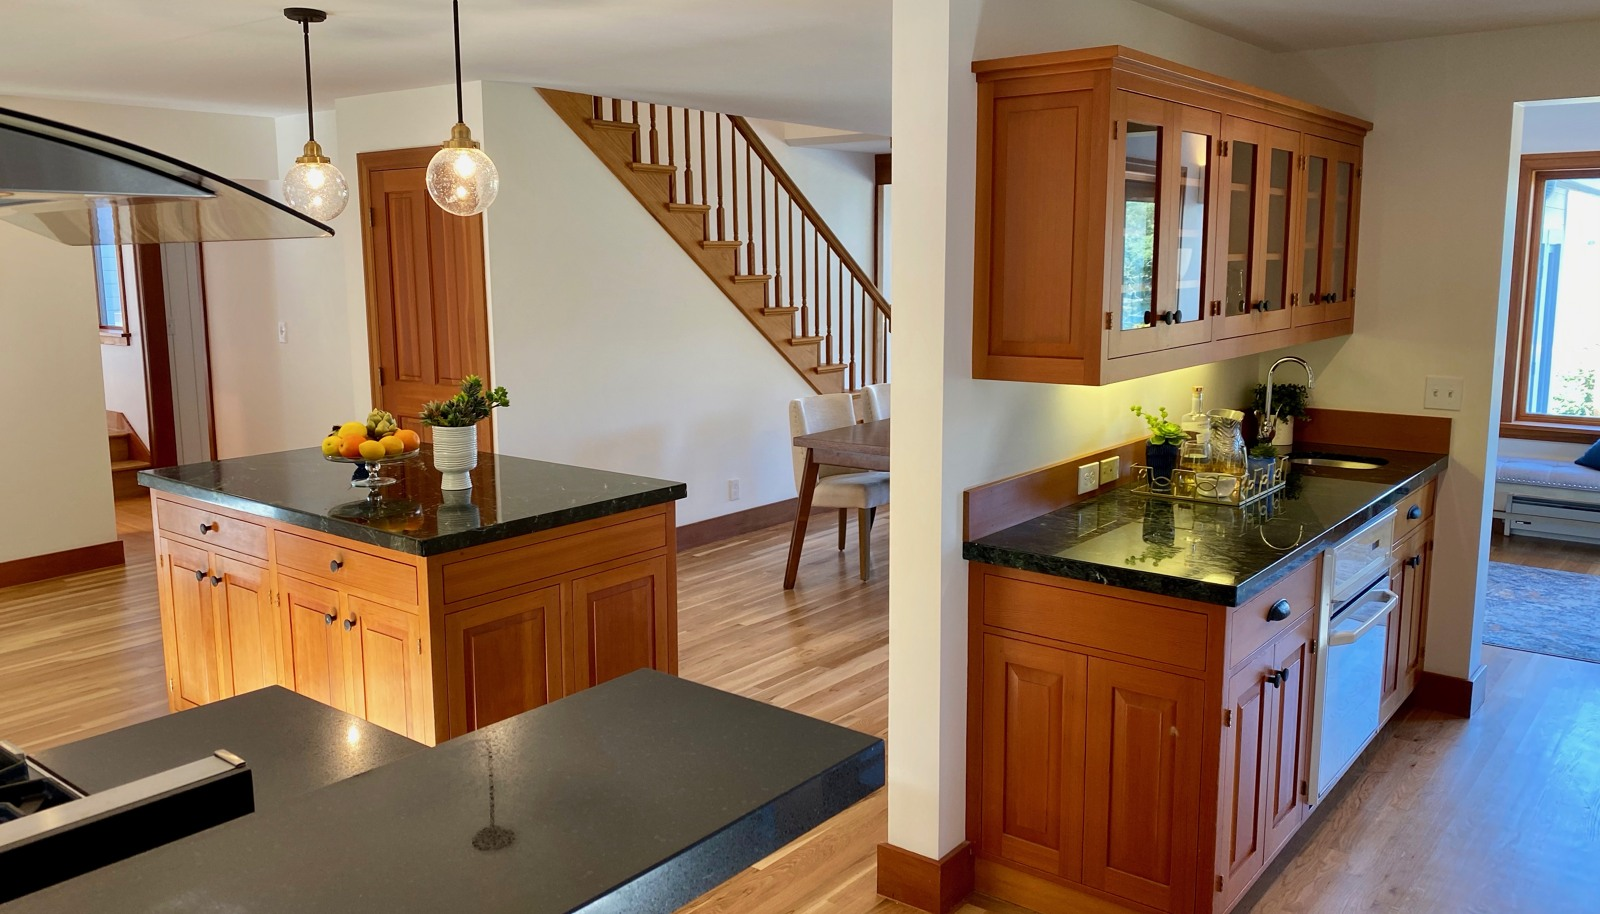 View from the kitchen's breakfast counter to the island, with marble counter and bar with second oven and sink.